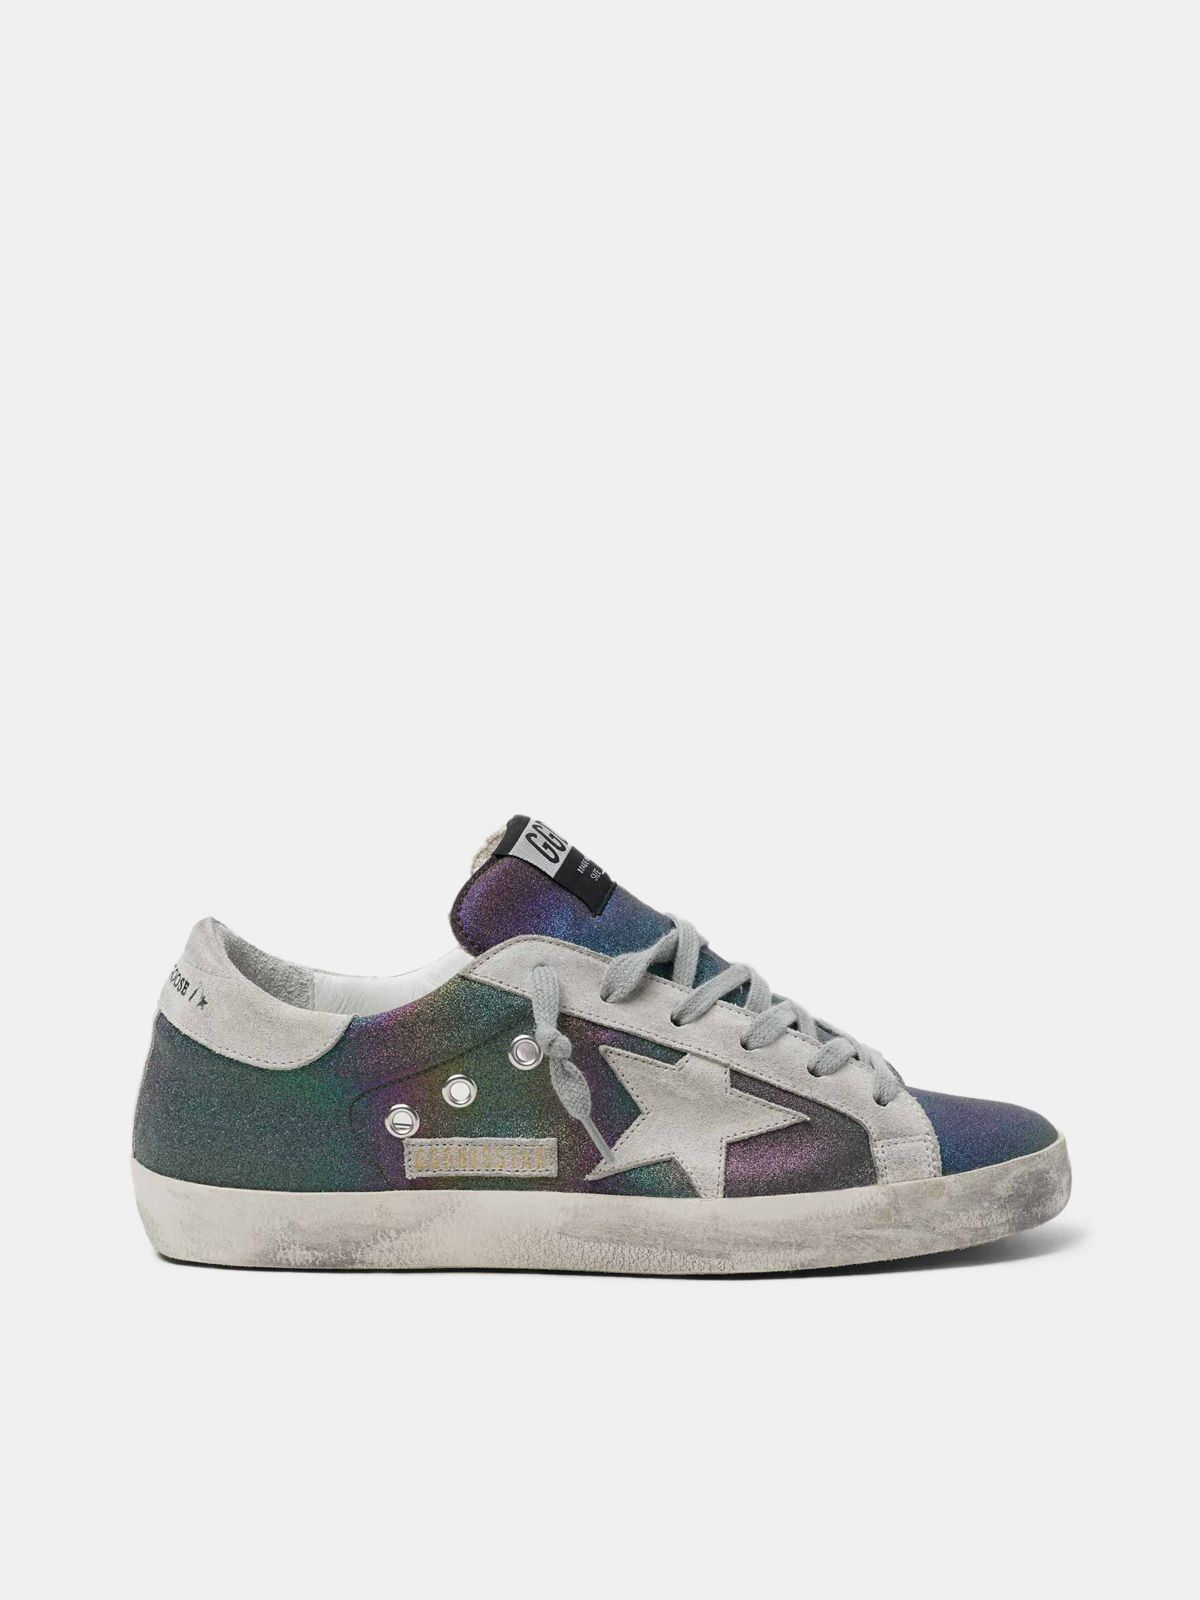 Golden Goose - Super-Star sneakers with rainbow glitter in